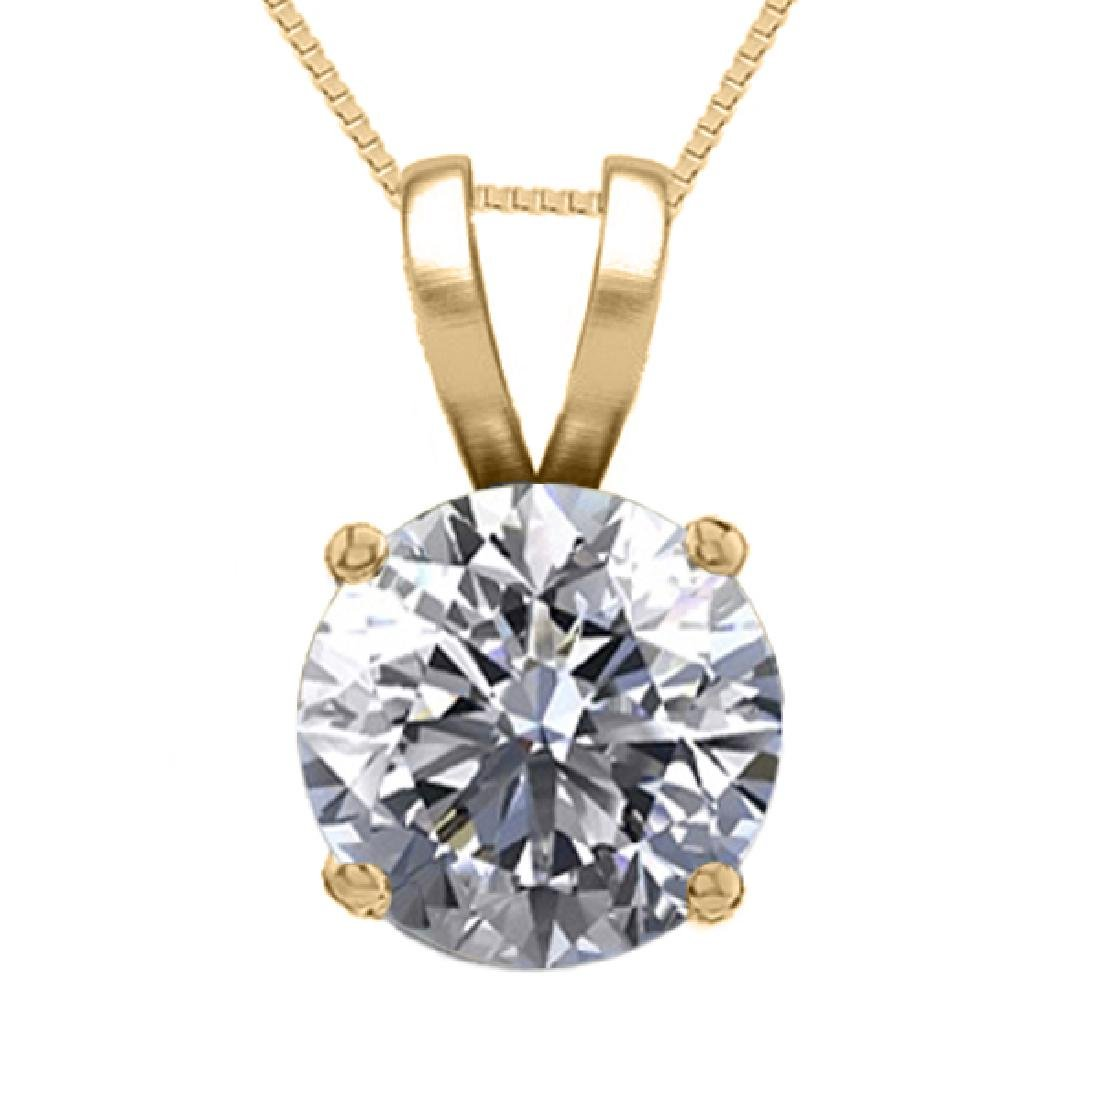 14K Yellow Gold 0.54 ct Natural Diamond Solitaire